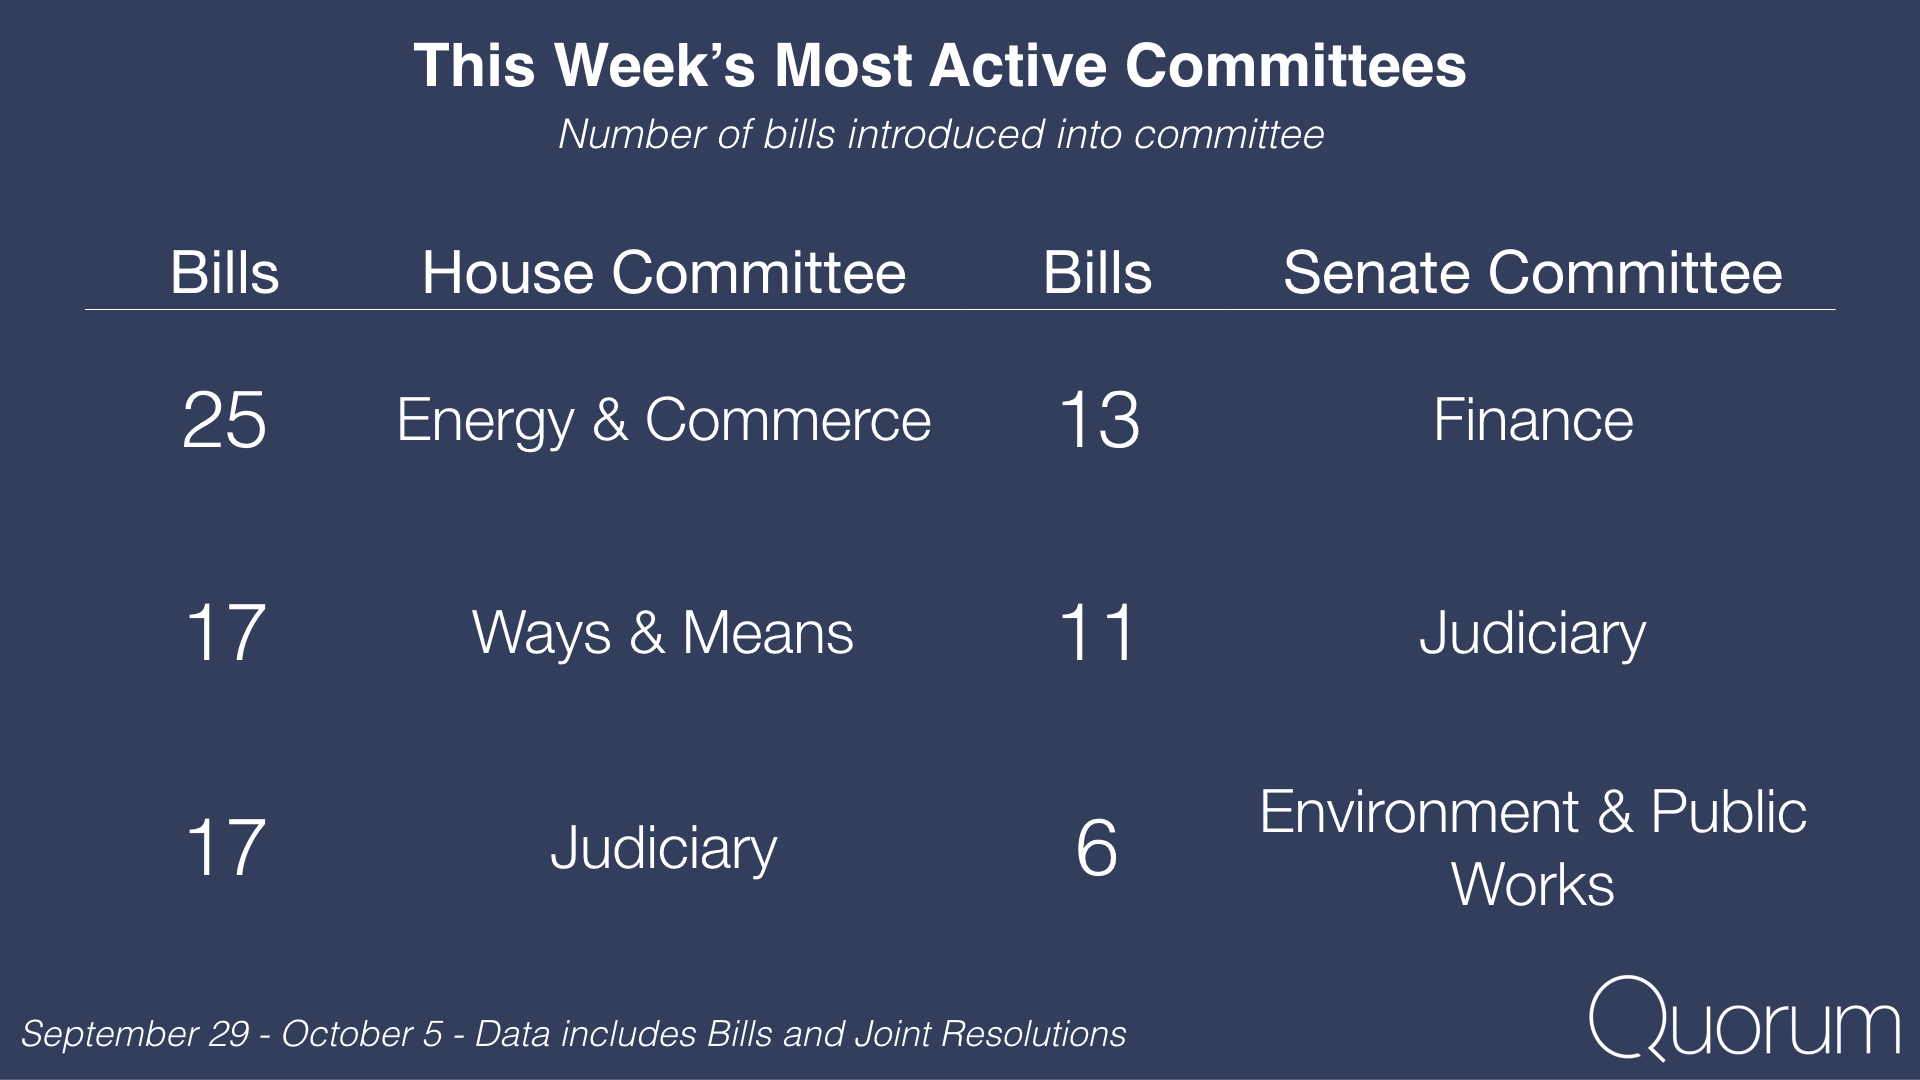 This week's most active committees.